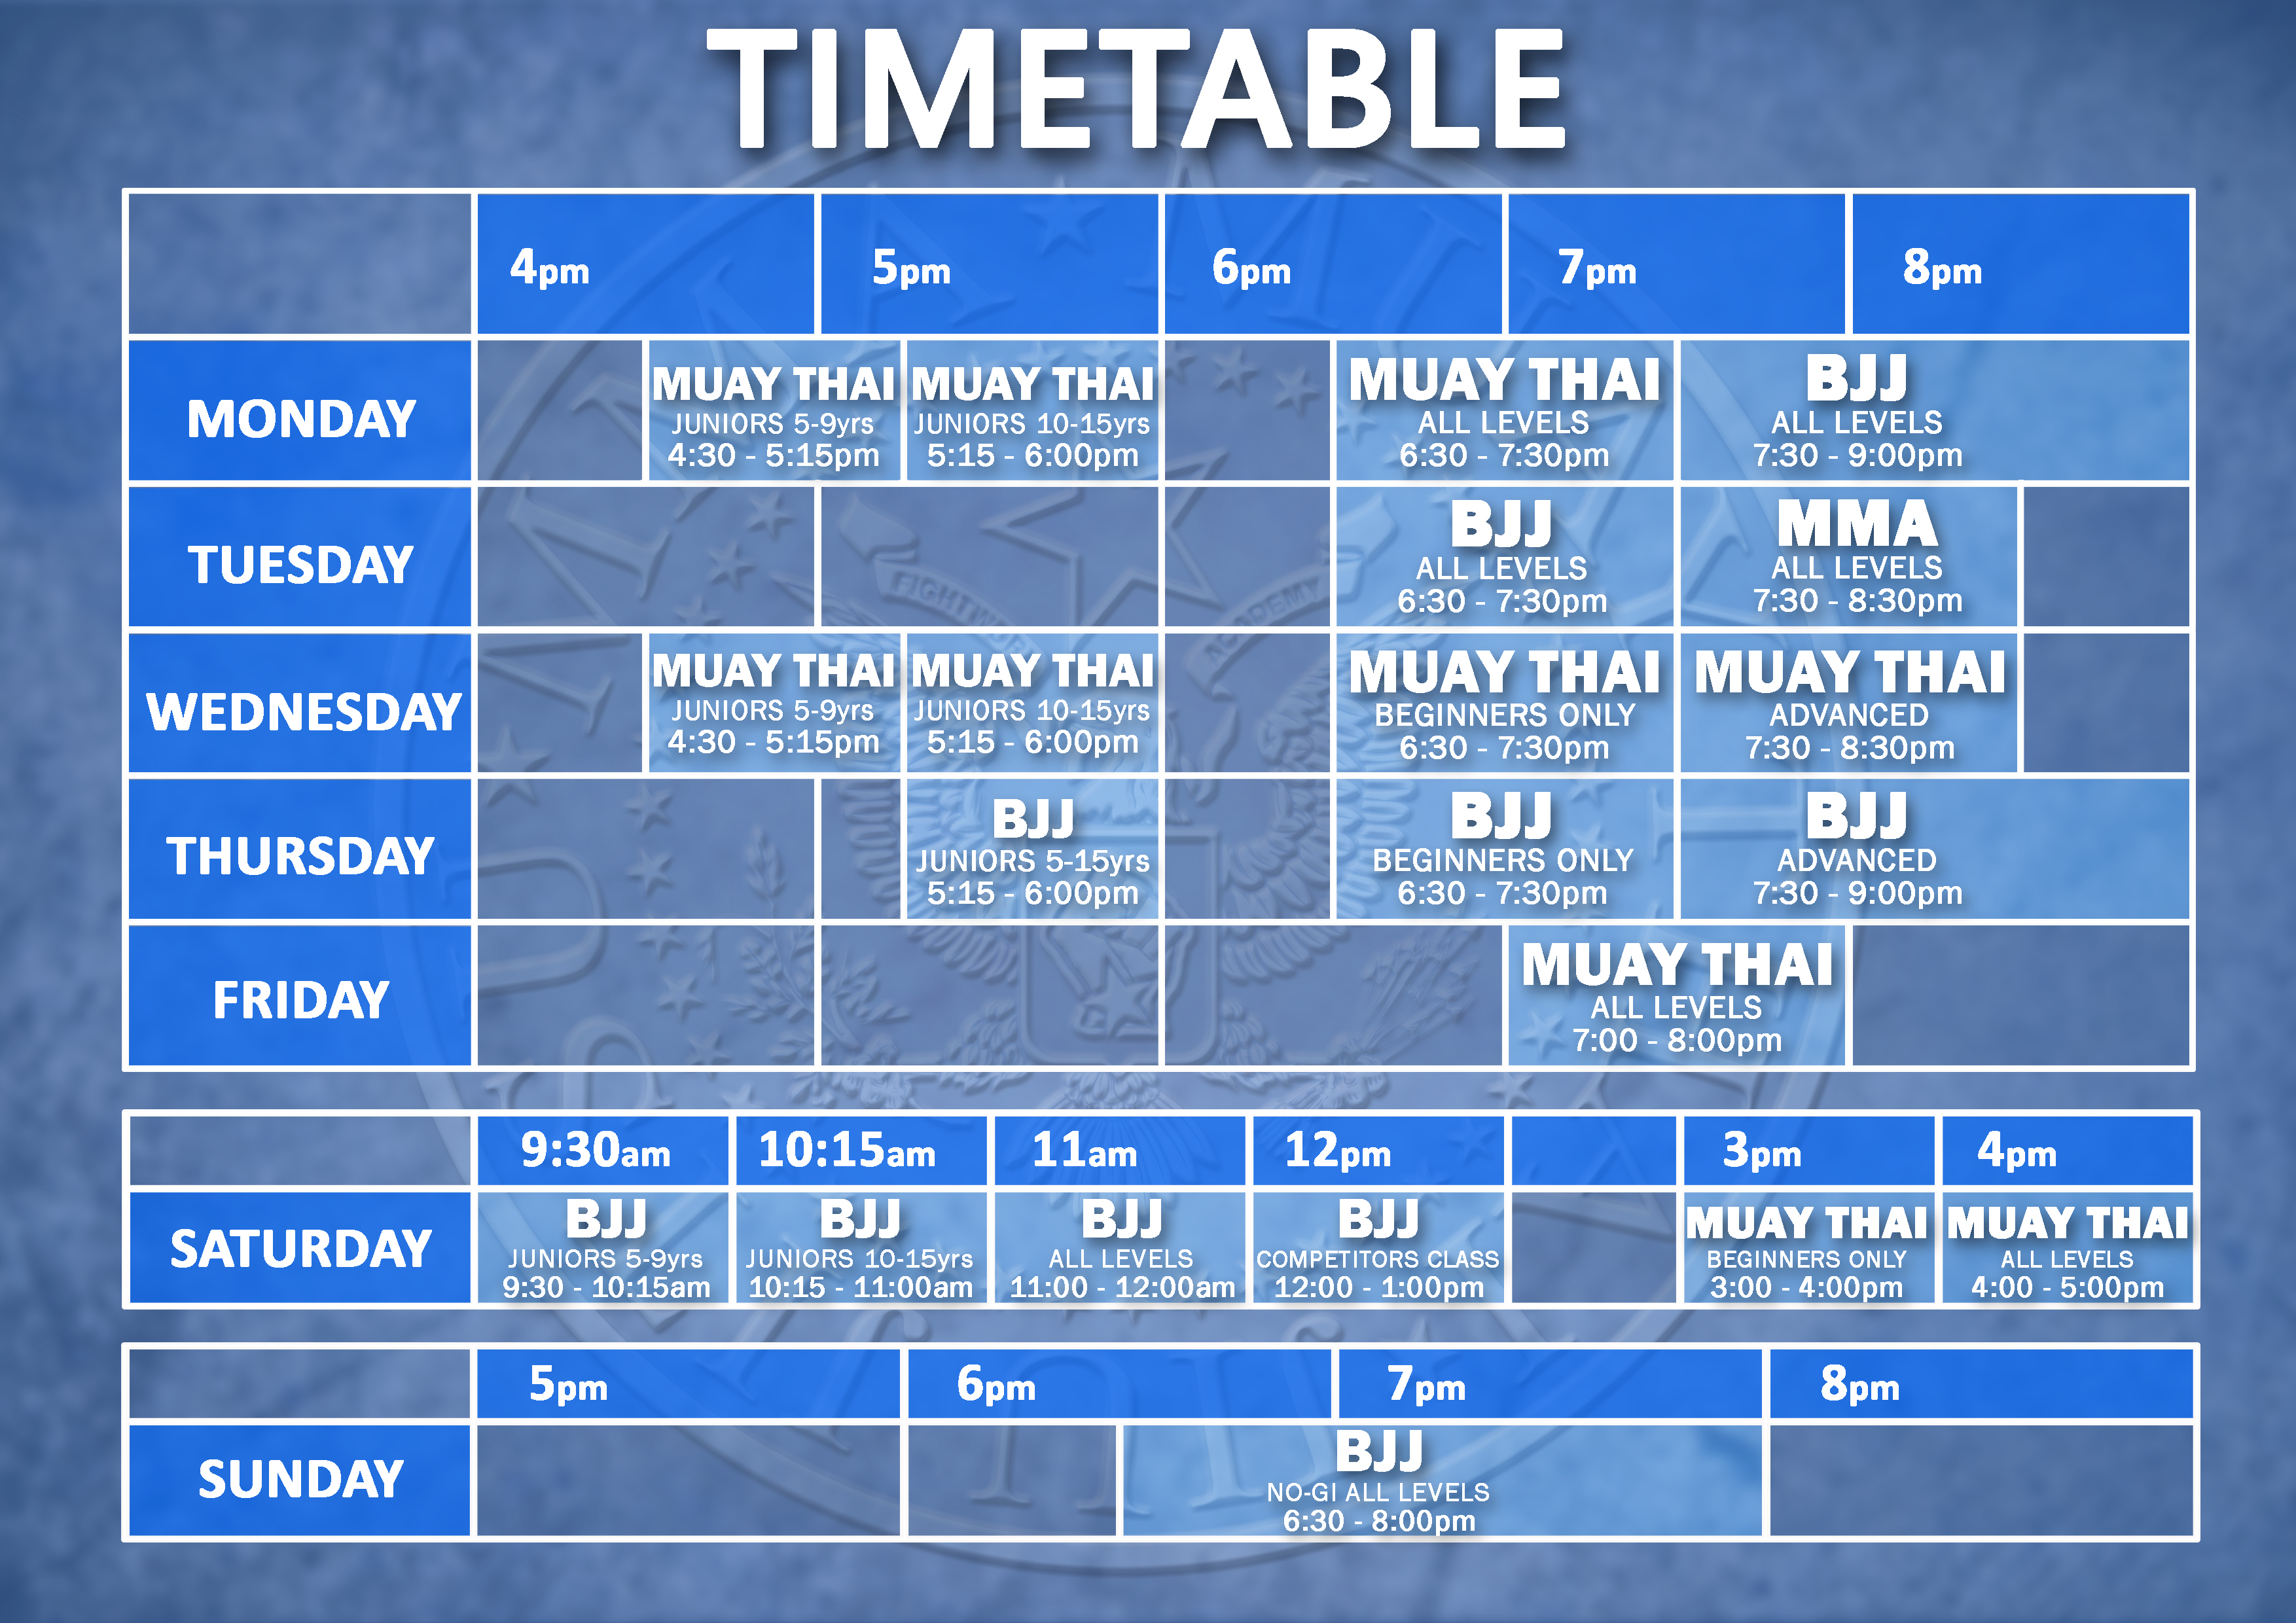 2019 Timetable